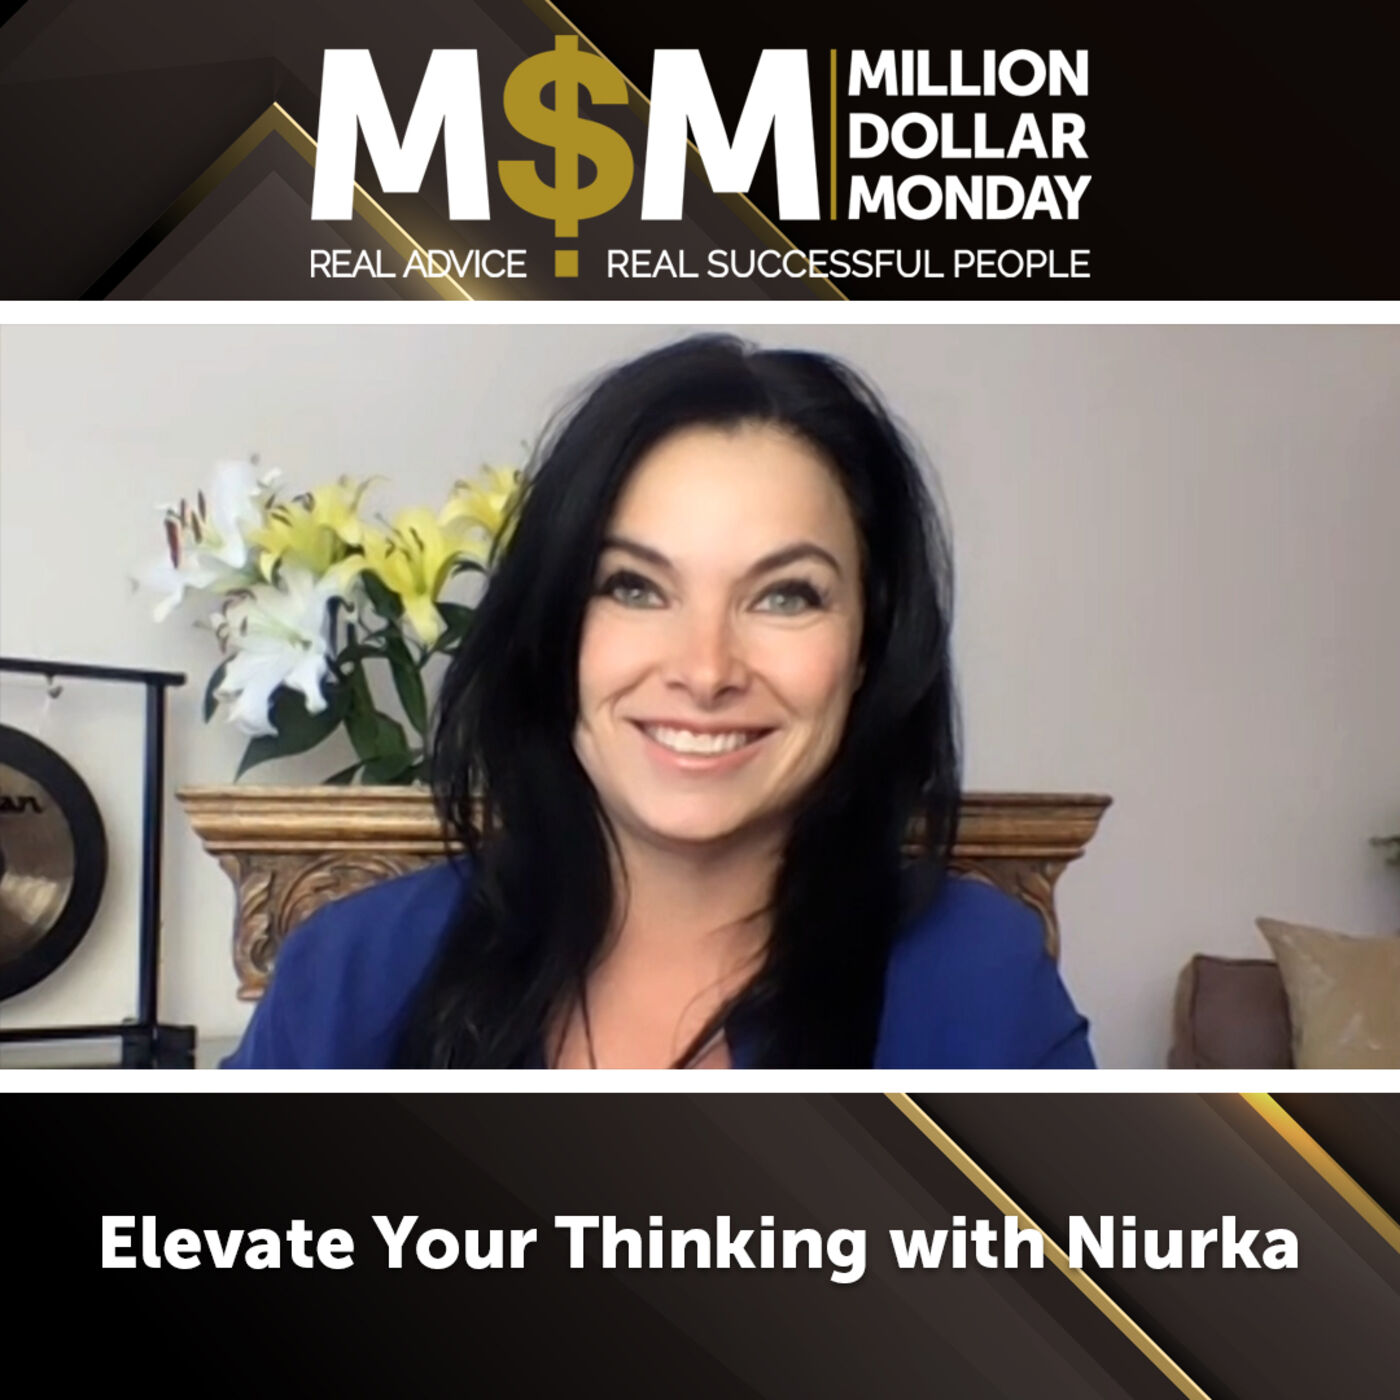 Elevate Your Thinking with Niurka